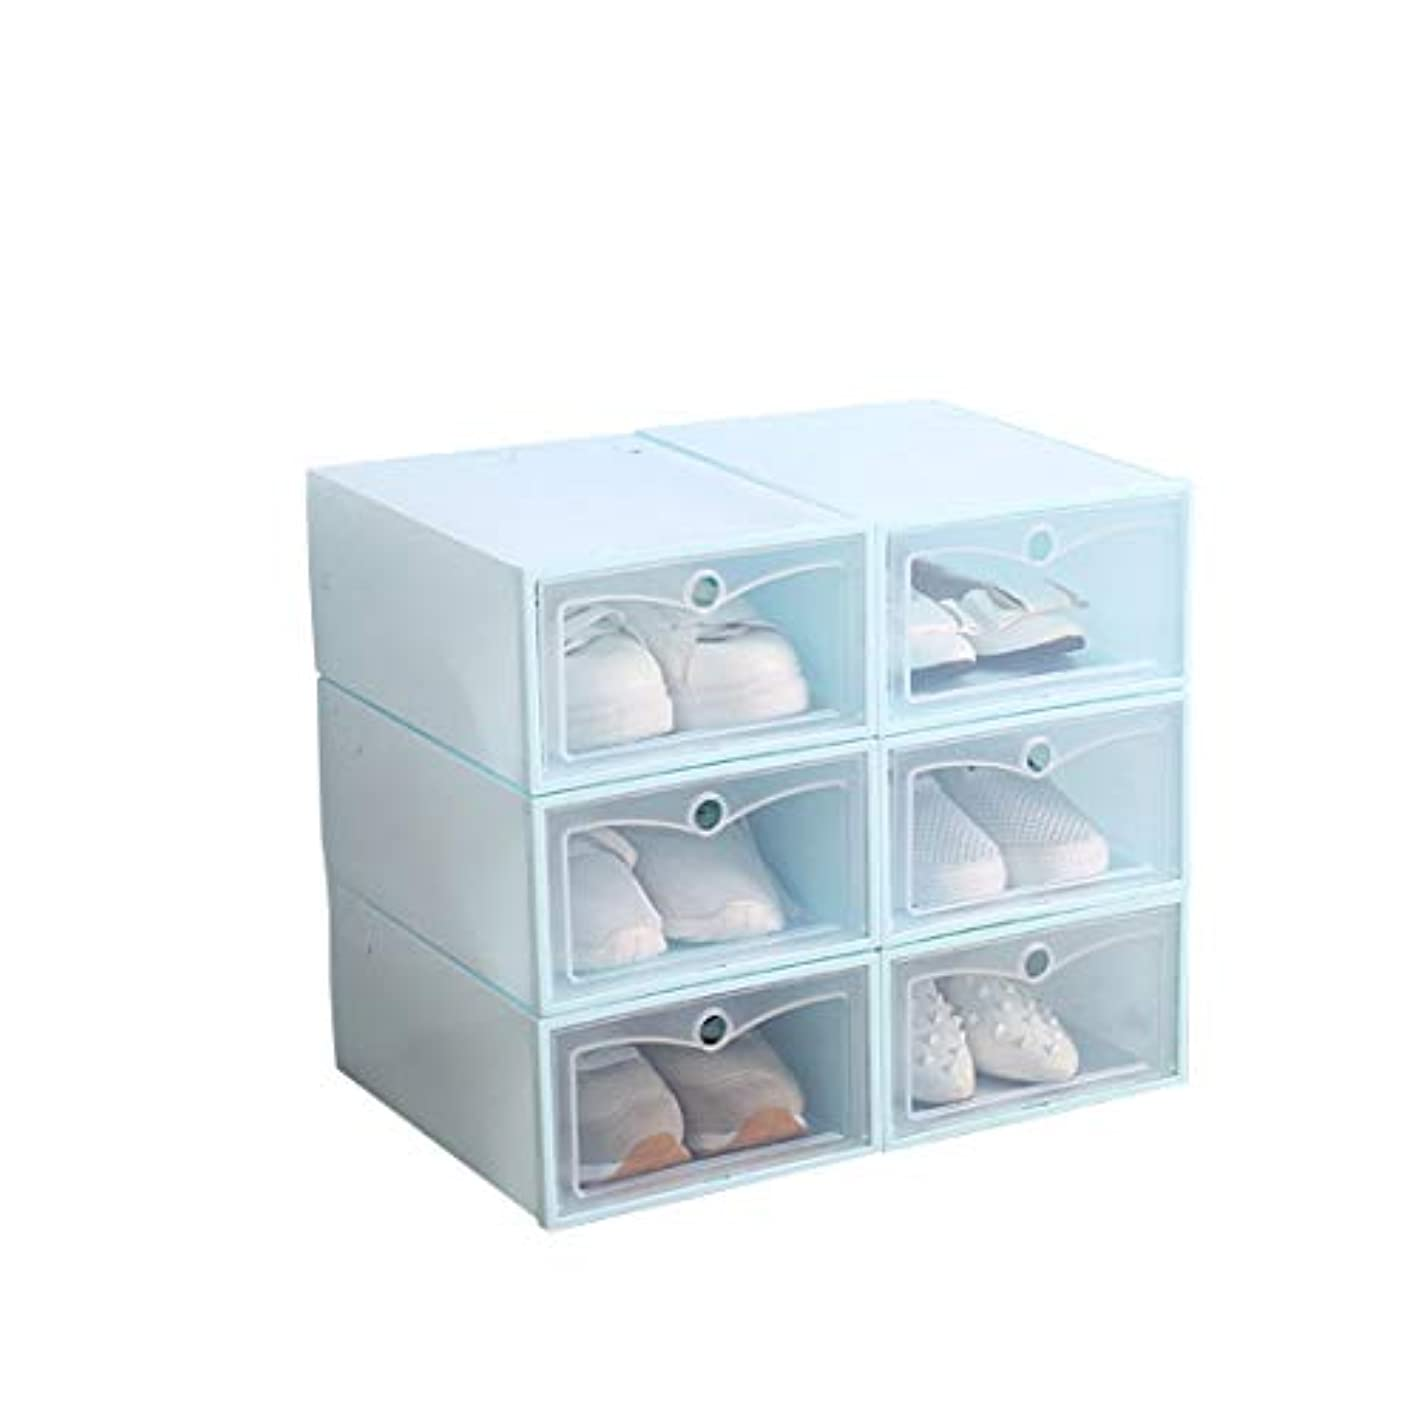 Shoes Organizer Shoe Box Storage Containers Foldable Clear Male Dust-Free Shoe Storage Box Pack of 6